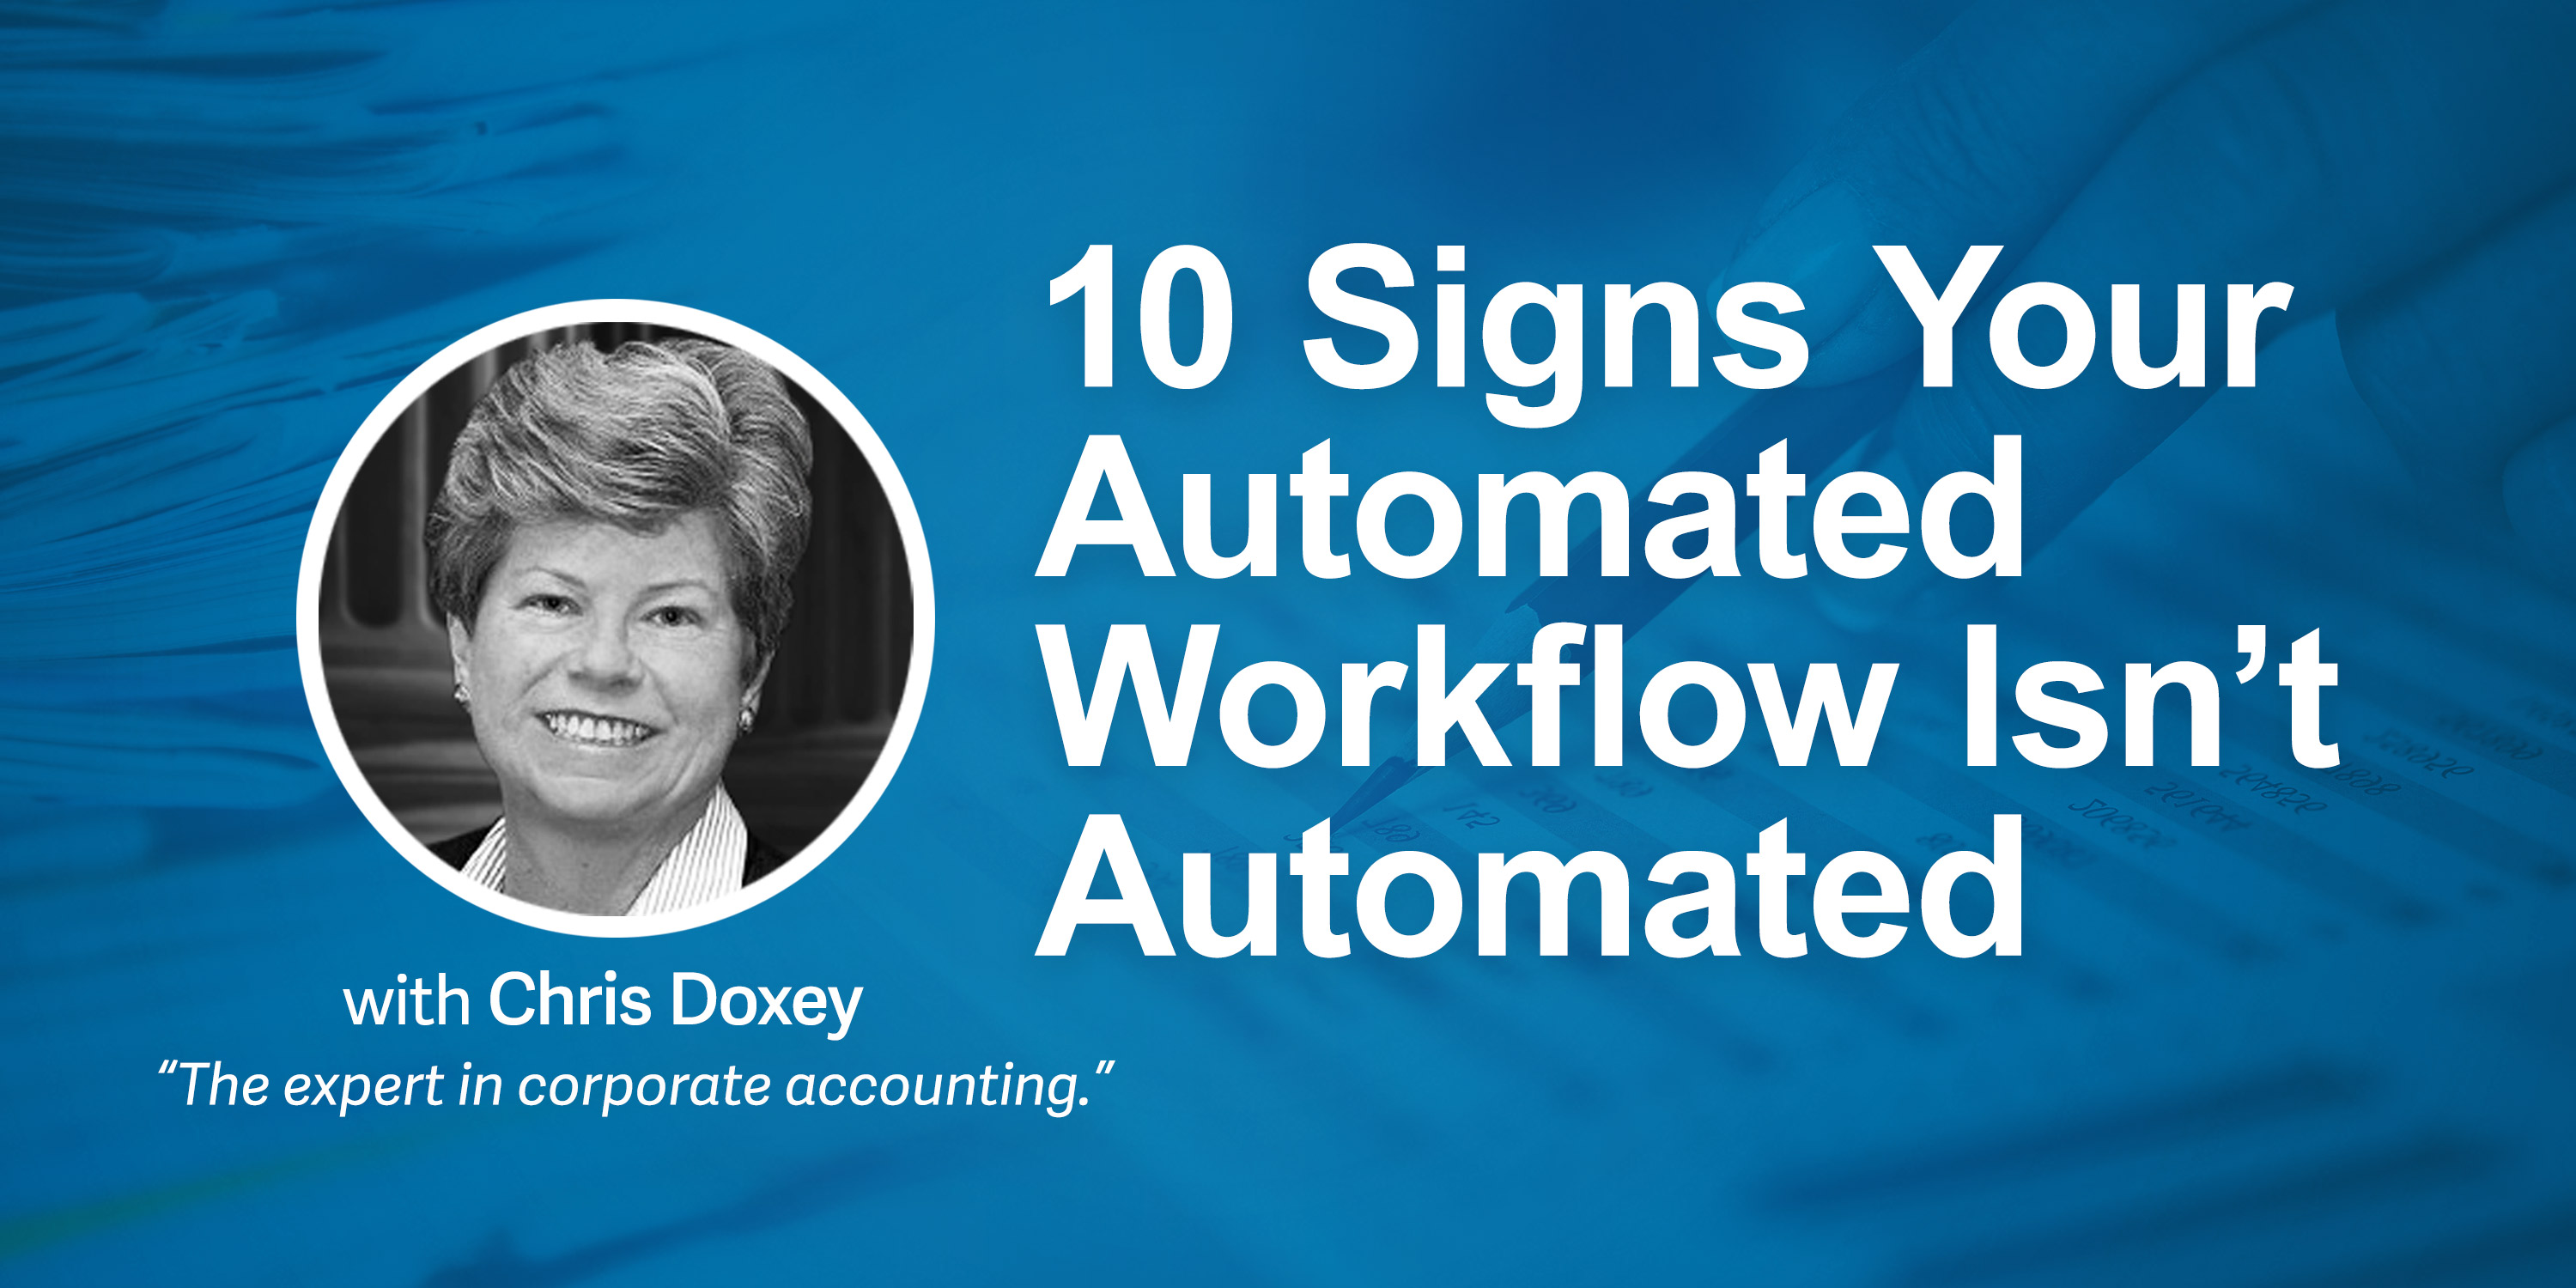 10 Signs Your Automated Workflow Isn't Automated